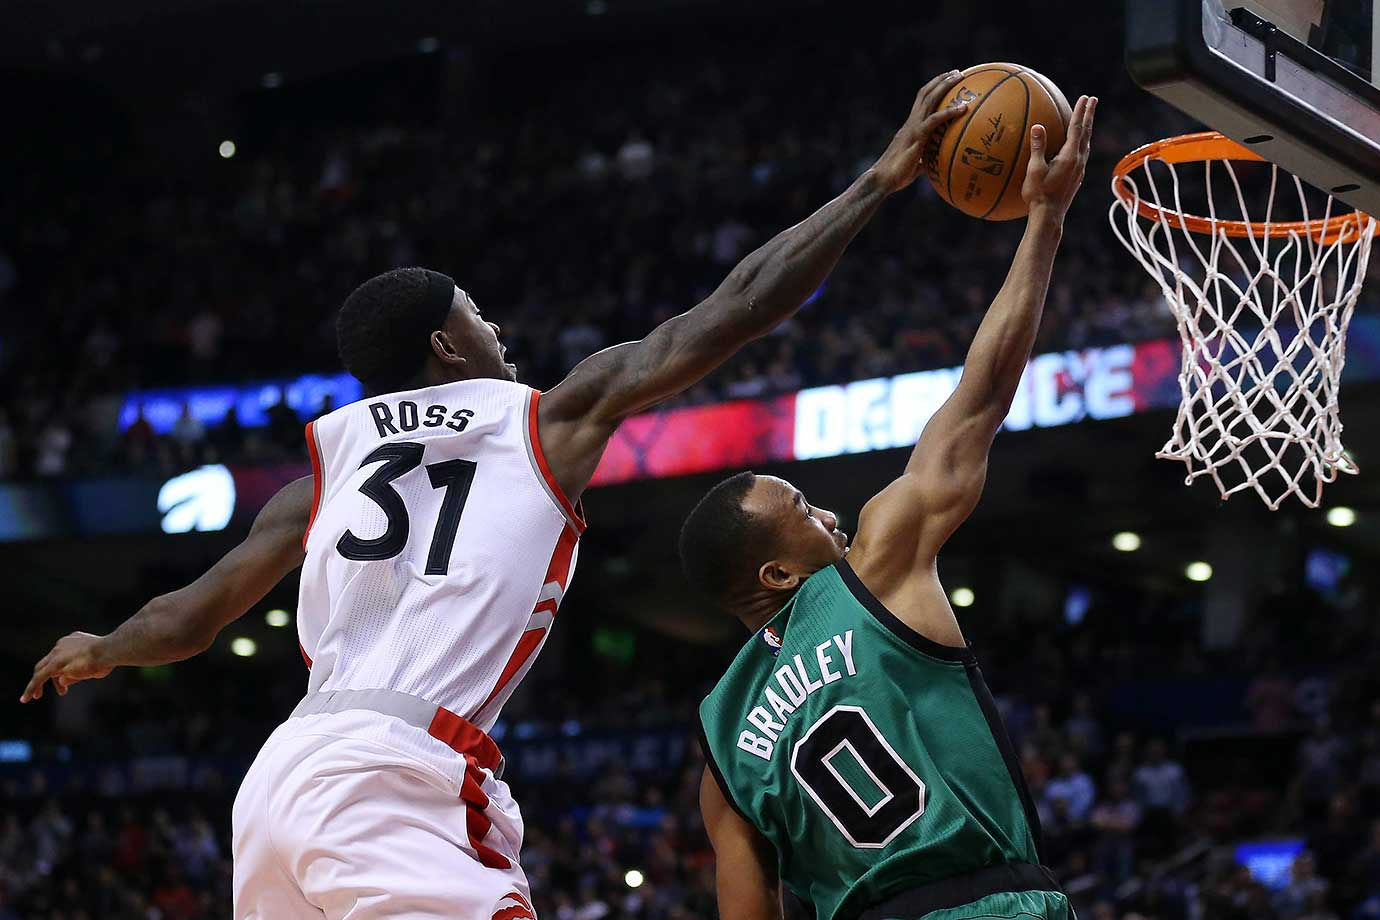 Terrence Ross blocks a Avery Bradley shot  as the Toronto Raptors beat the Boston Celtics 115-109  at the Air Canada Centre in Toronto.